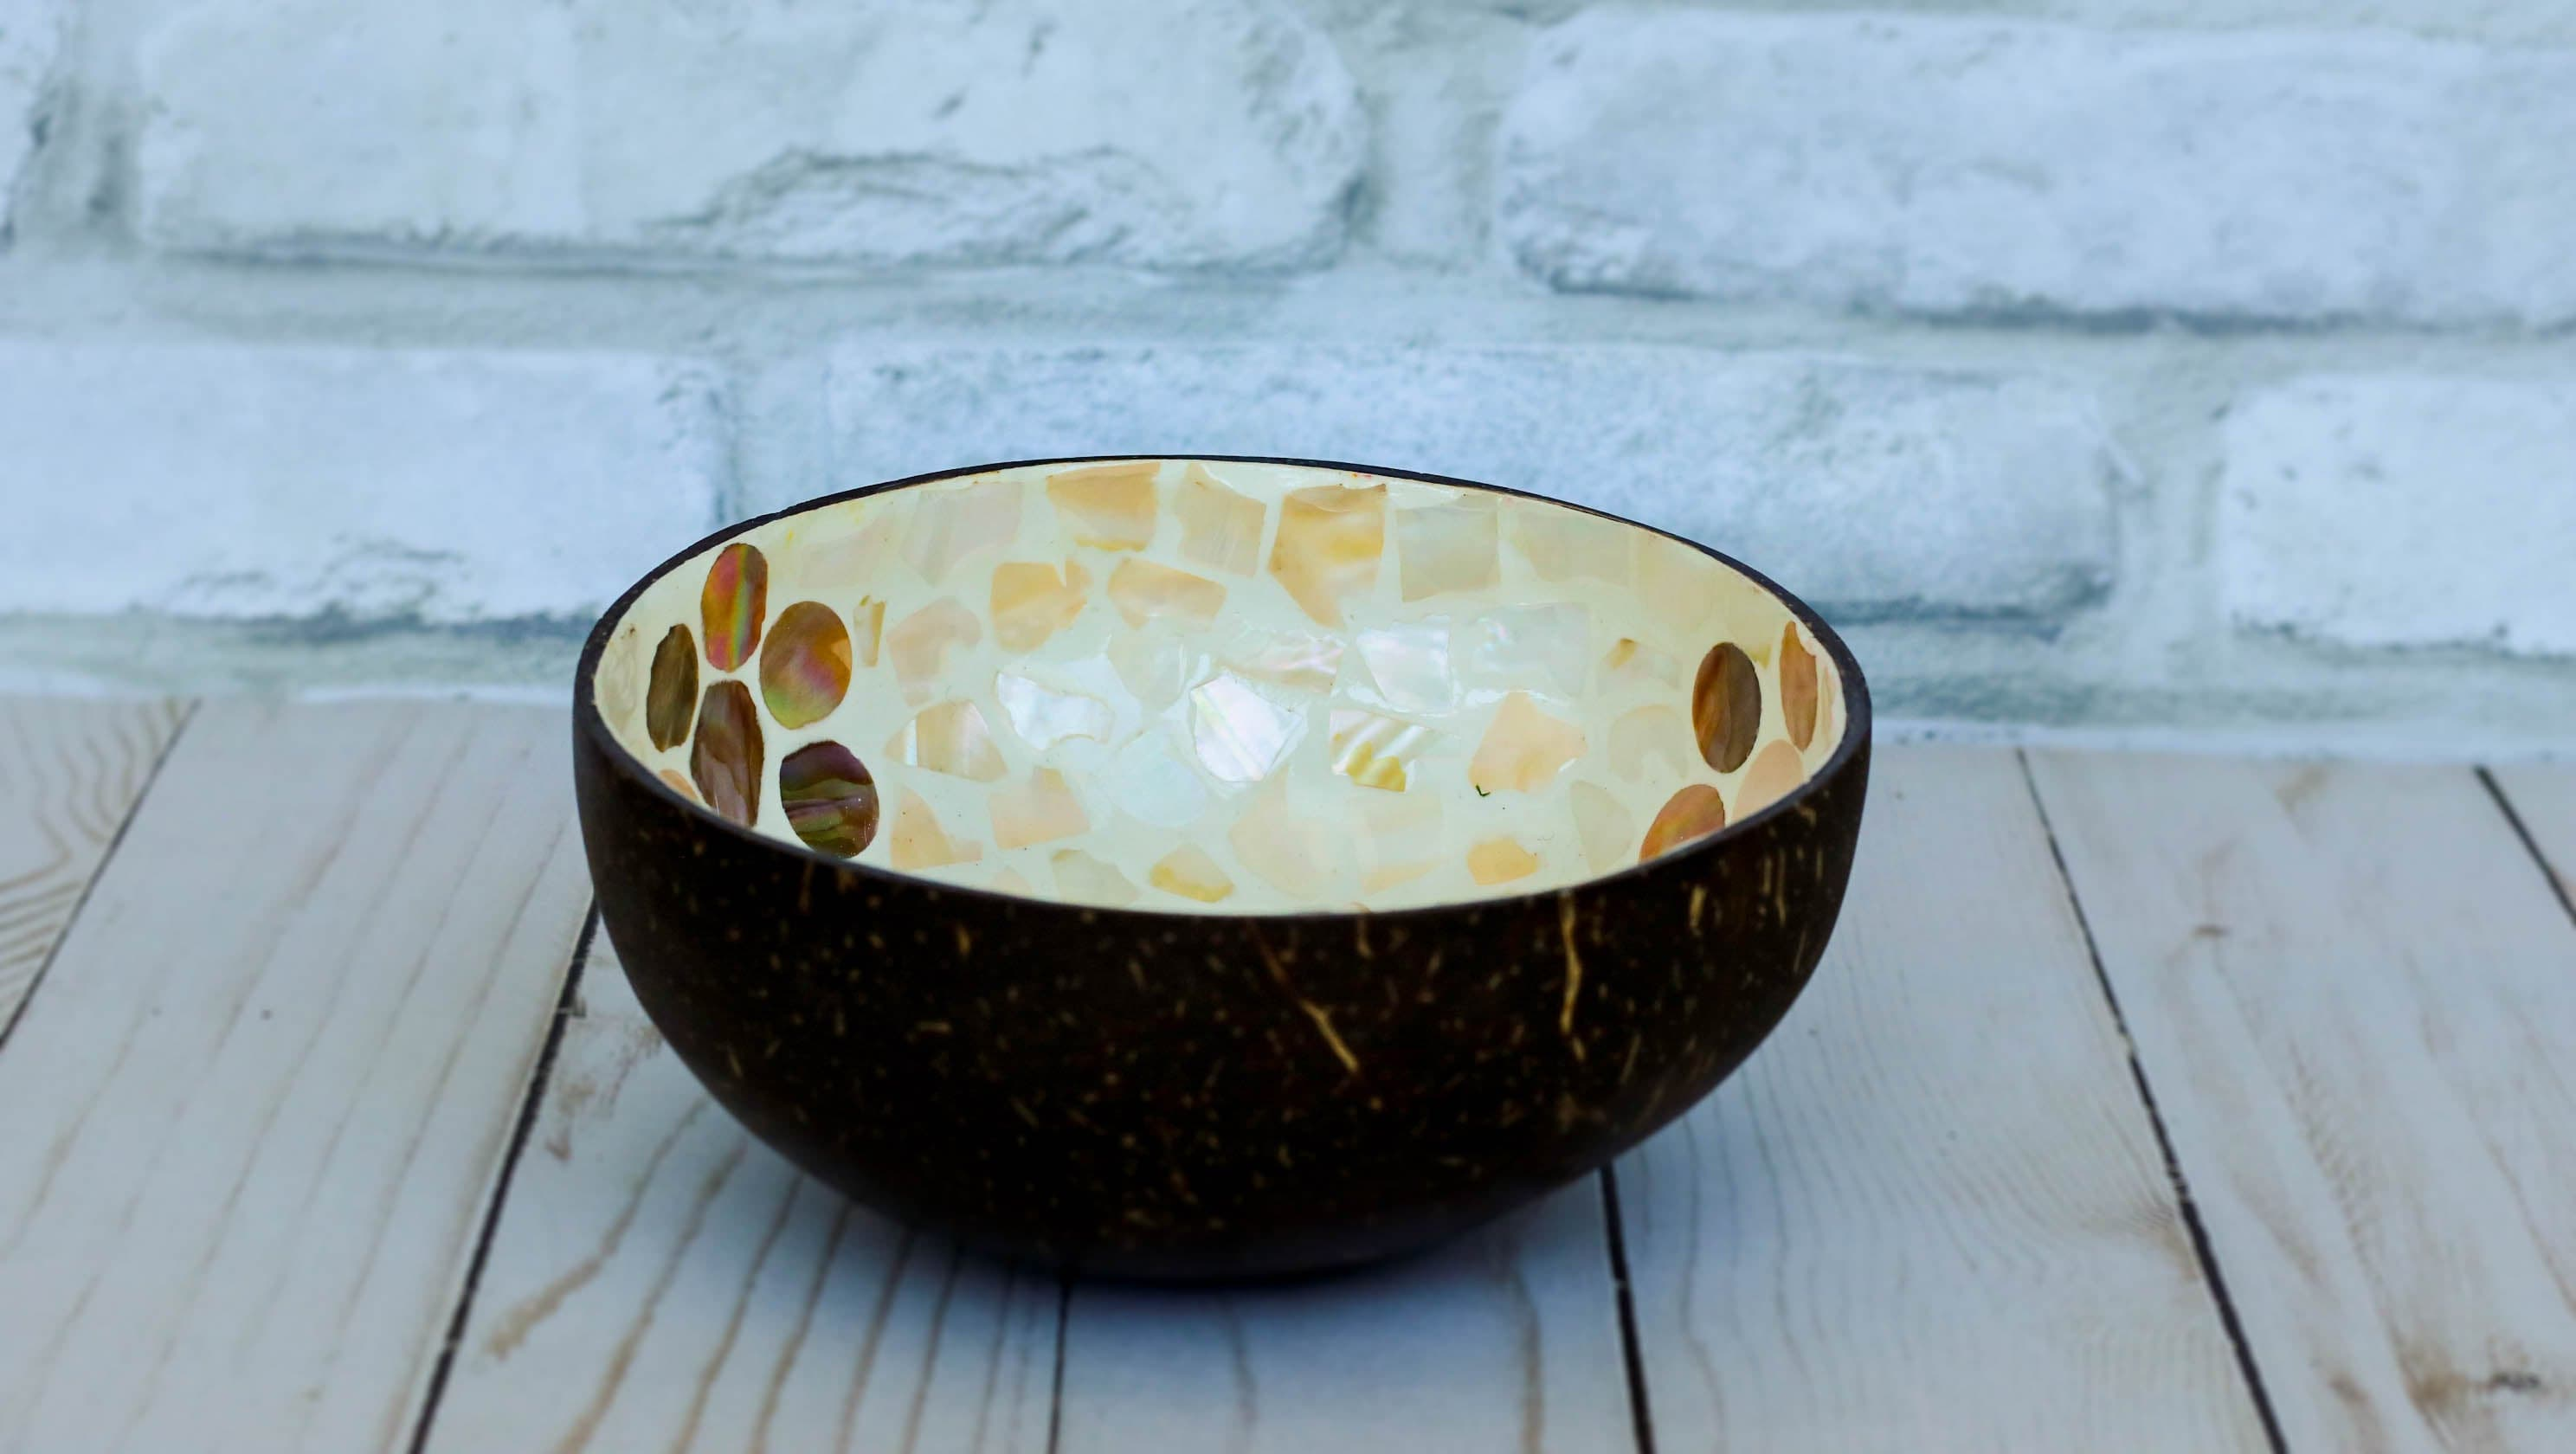 The Oddly Unique | Coconut Bowl